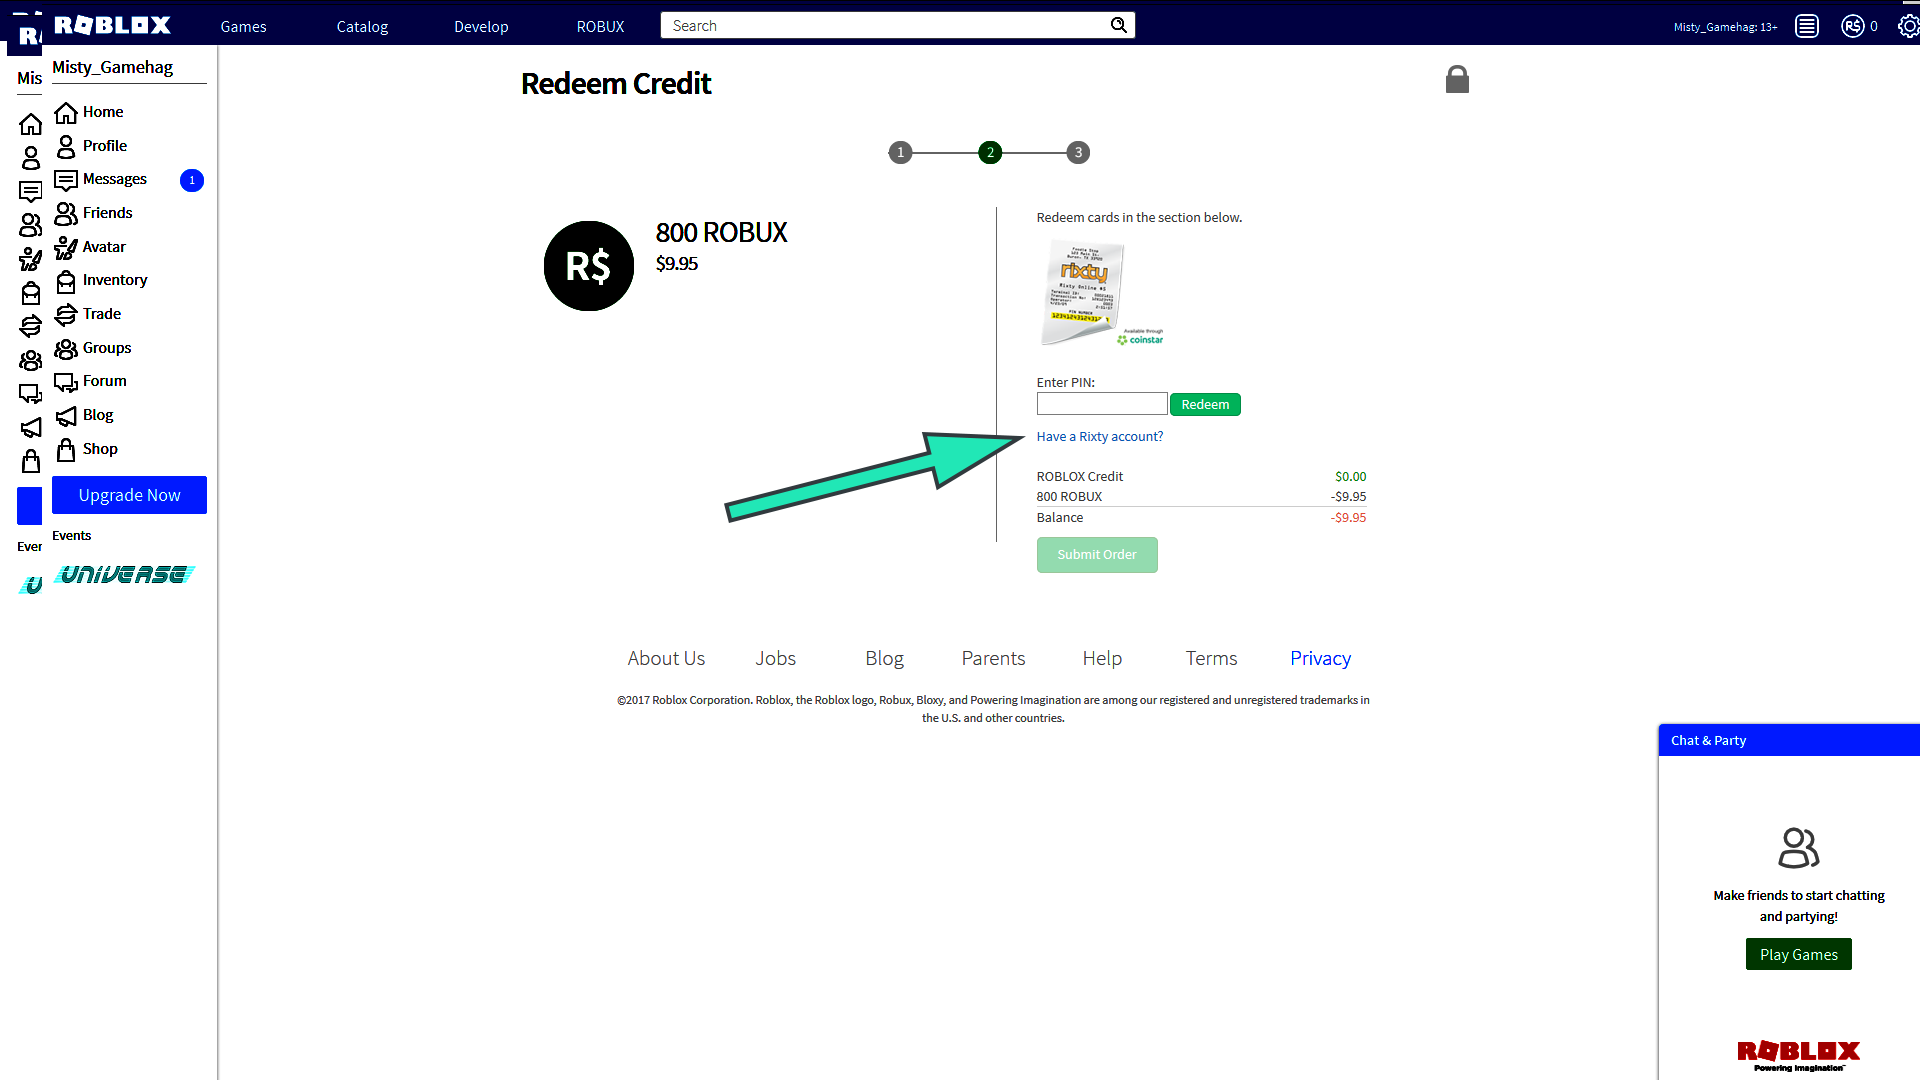 50 Robux Roblox Game Recharges For Free Gamehag How To Buy Robux In Roblox With A Paysafecard Gamehag